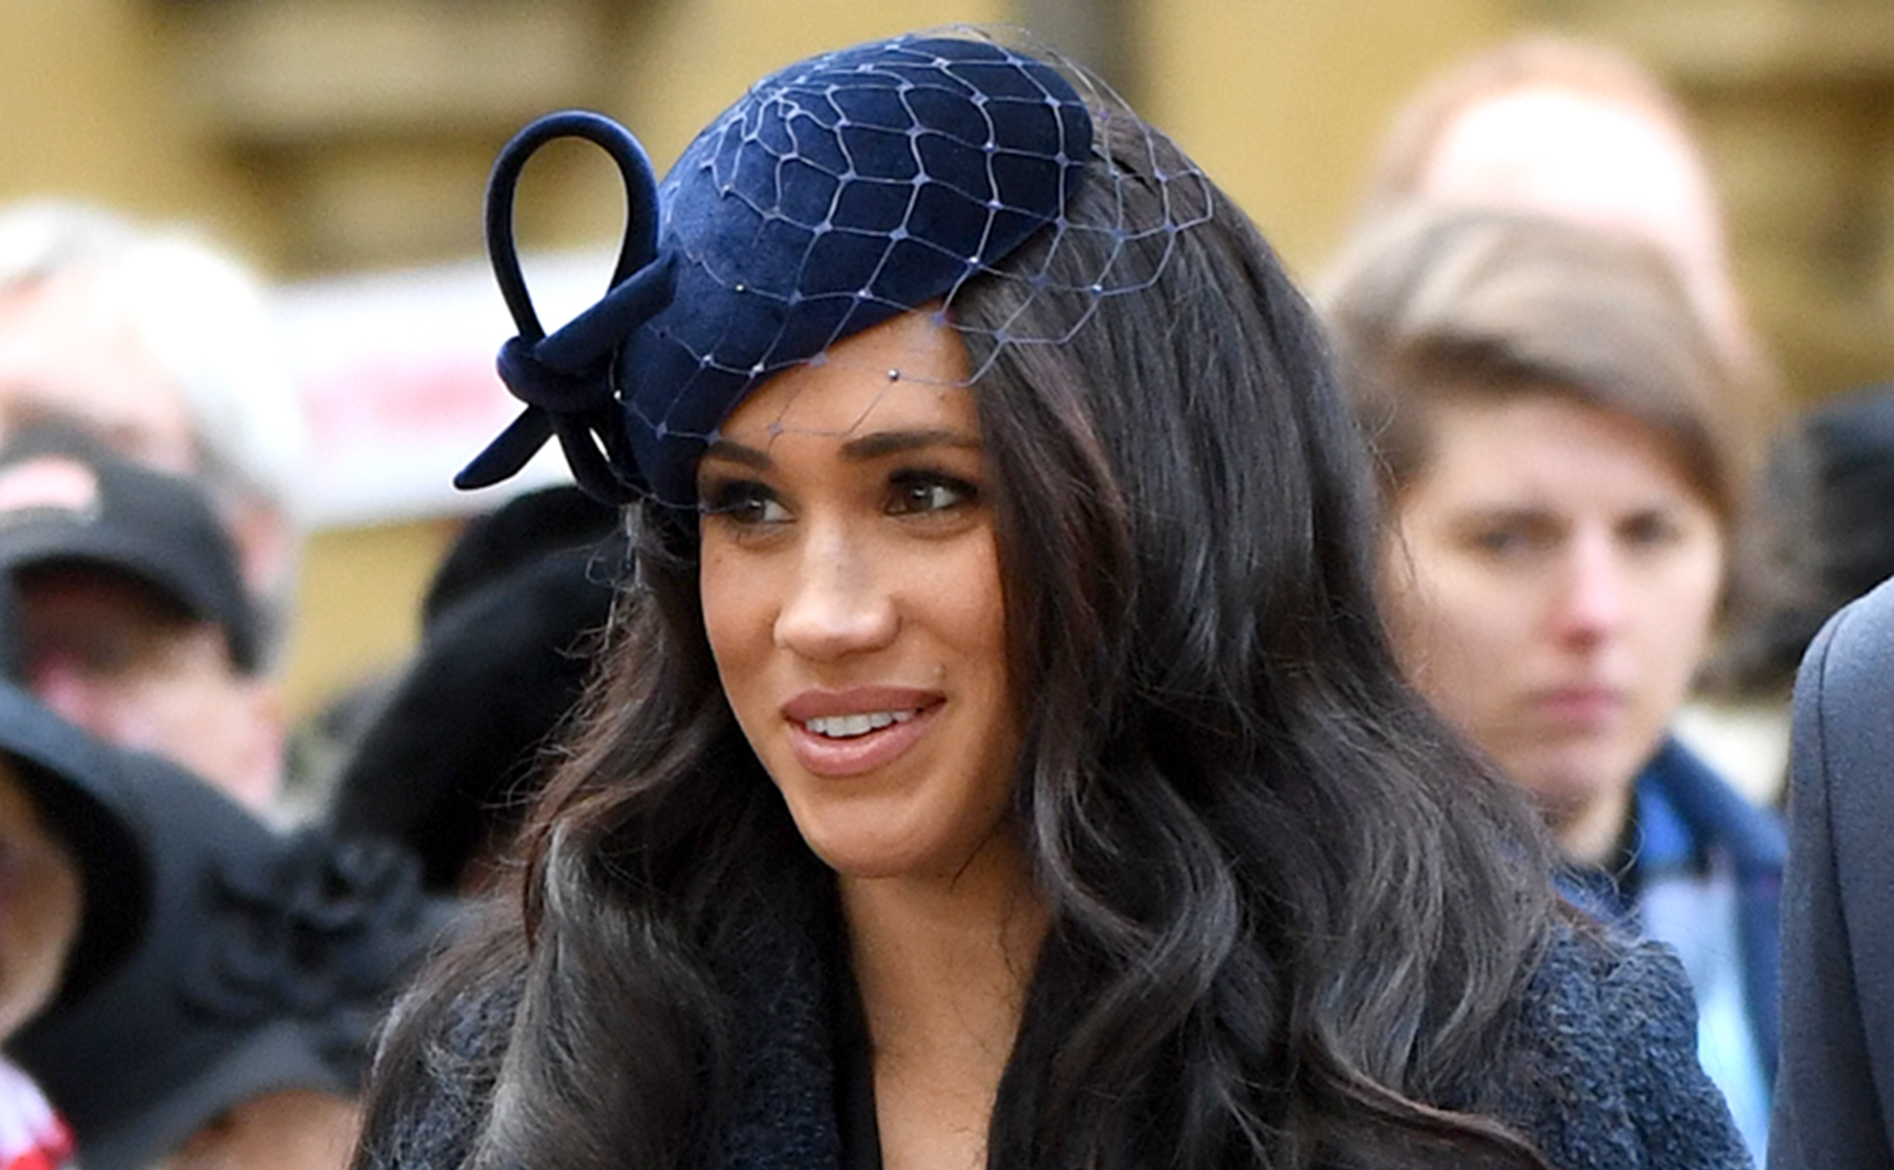 Reports claim Meghan Markle 'regrets' giving up her old life and joining royal family